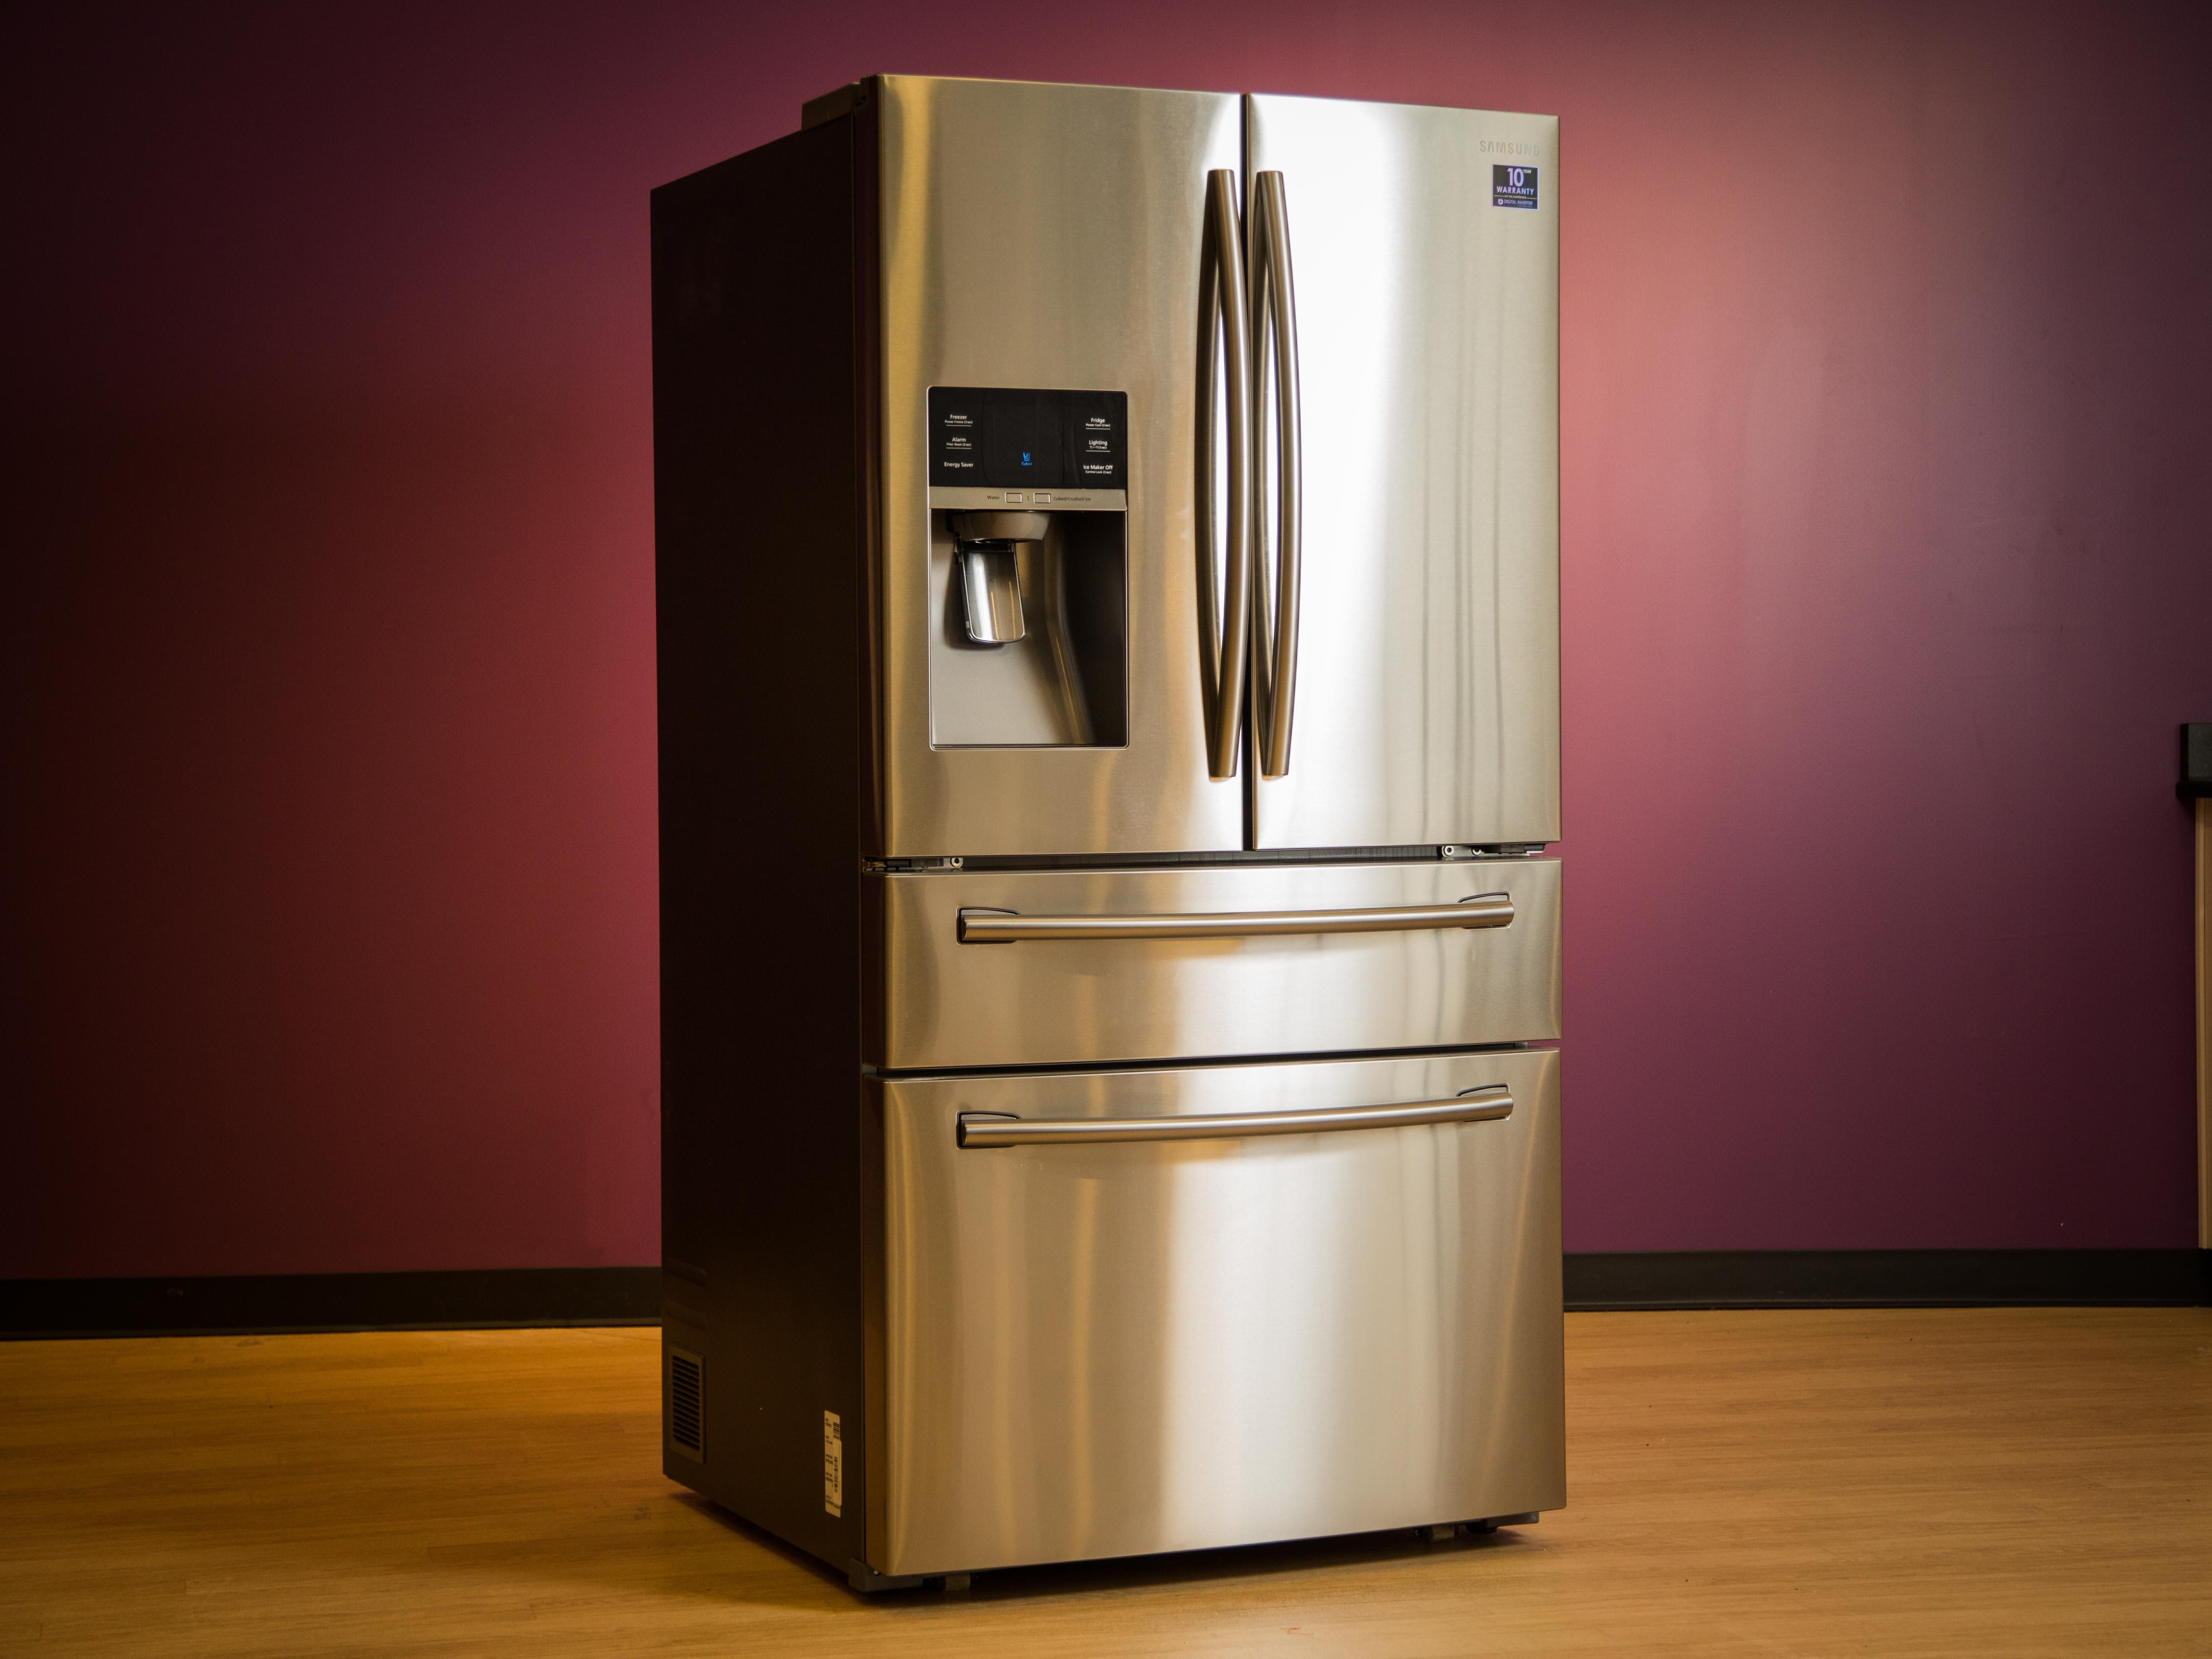 Samsung RF28HMEDBSR review -  Four-Door French Door Refrigerator